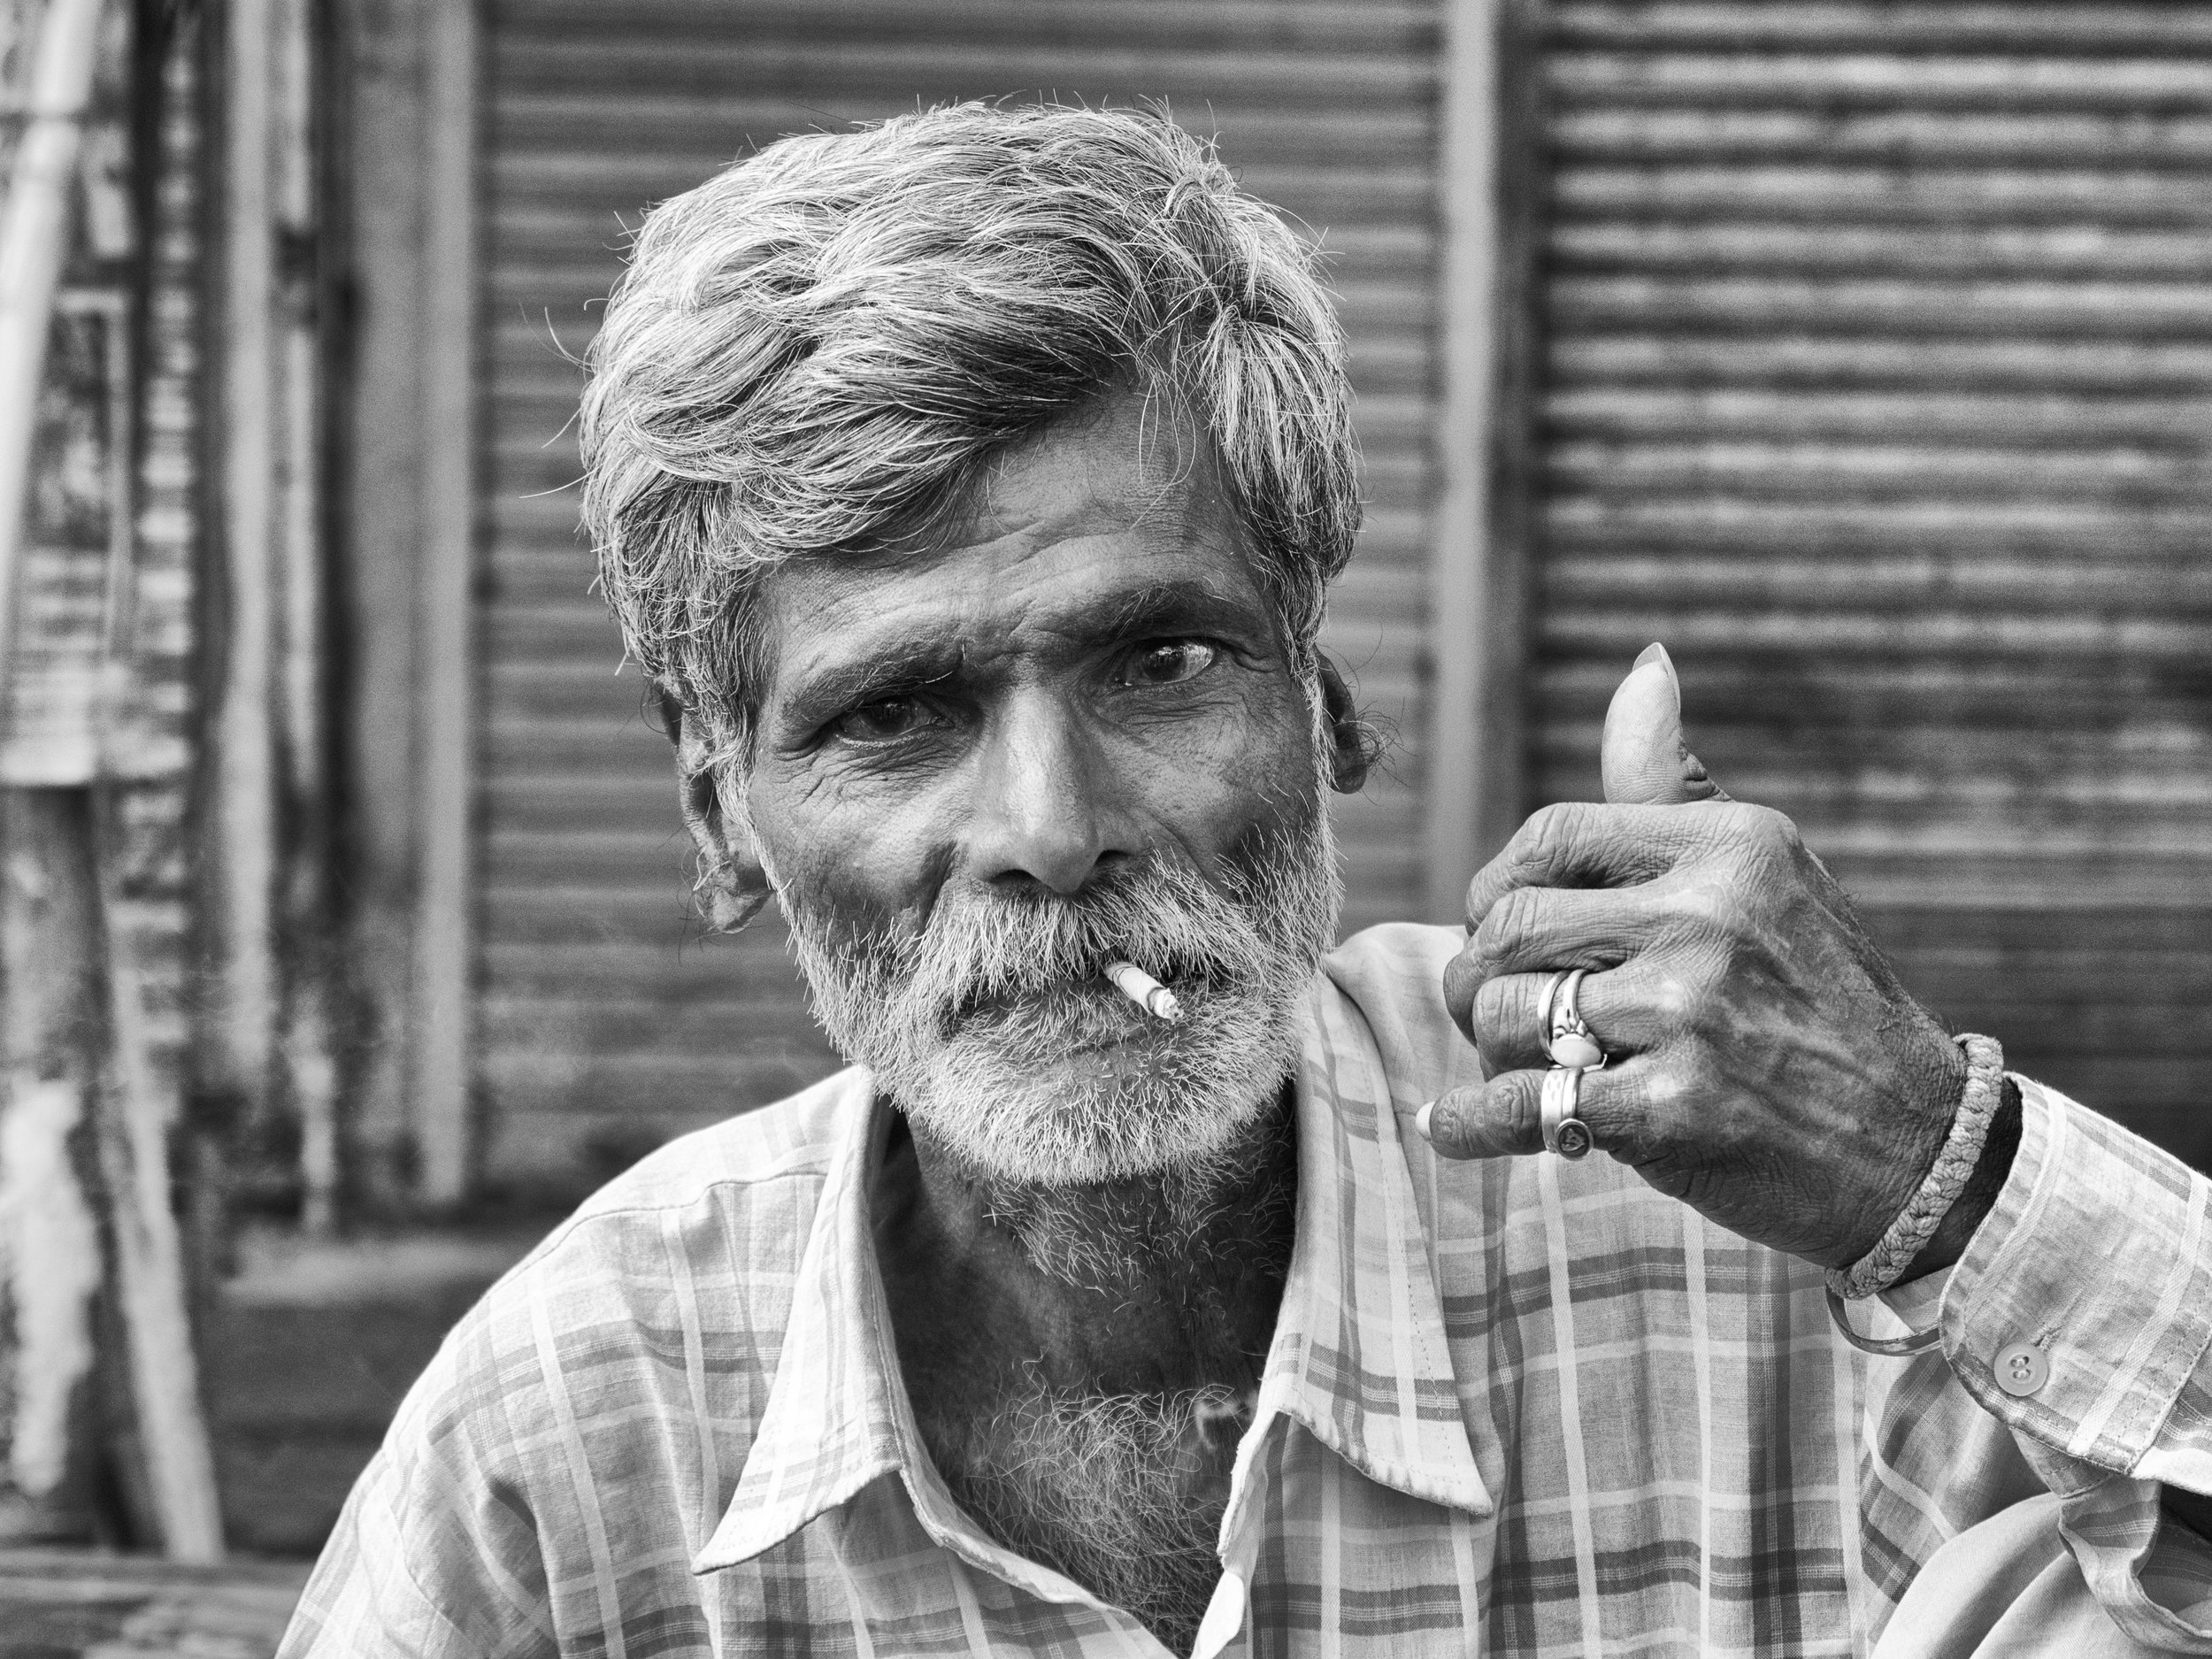 Man with Cigarette at Spice Market in Black and White - Old Delhi, India - Copyright 2016 Ralph Velasco.jpg